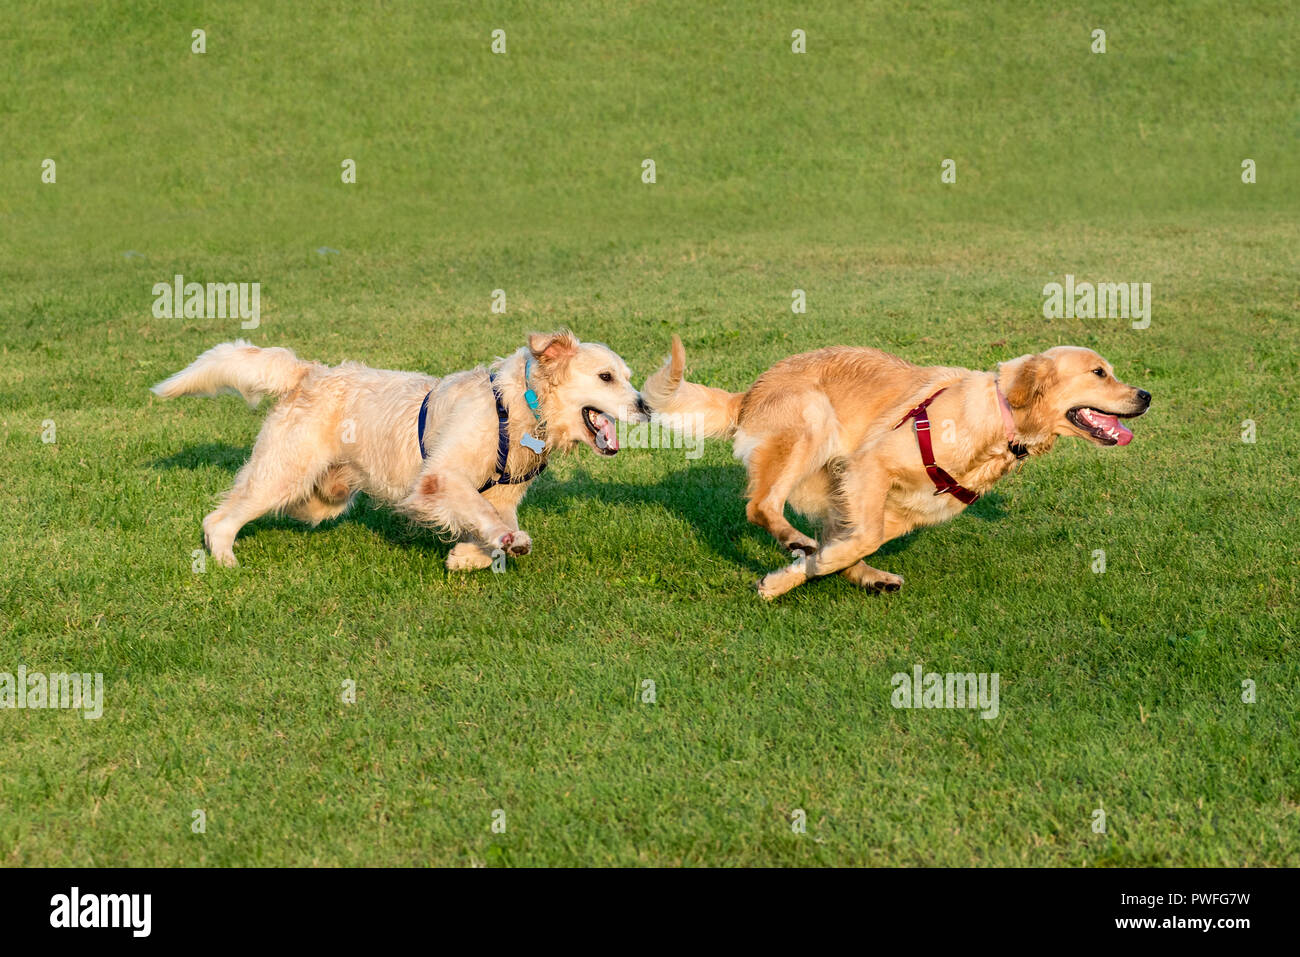 Two Golden Retriever dogs playing together and running on green grass lawn, captured in dynamic moment - Stock Image